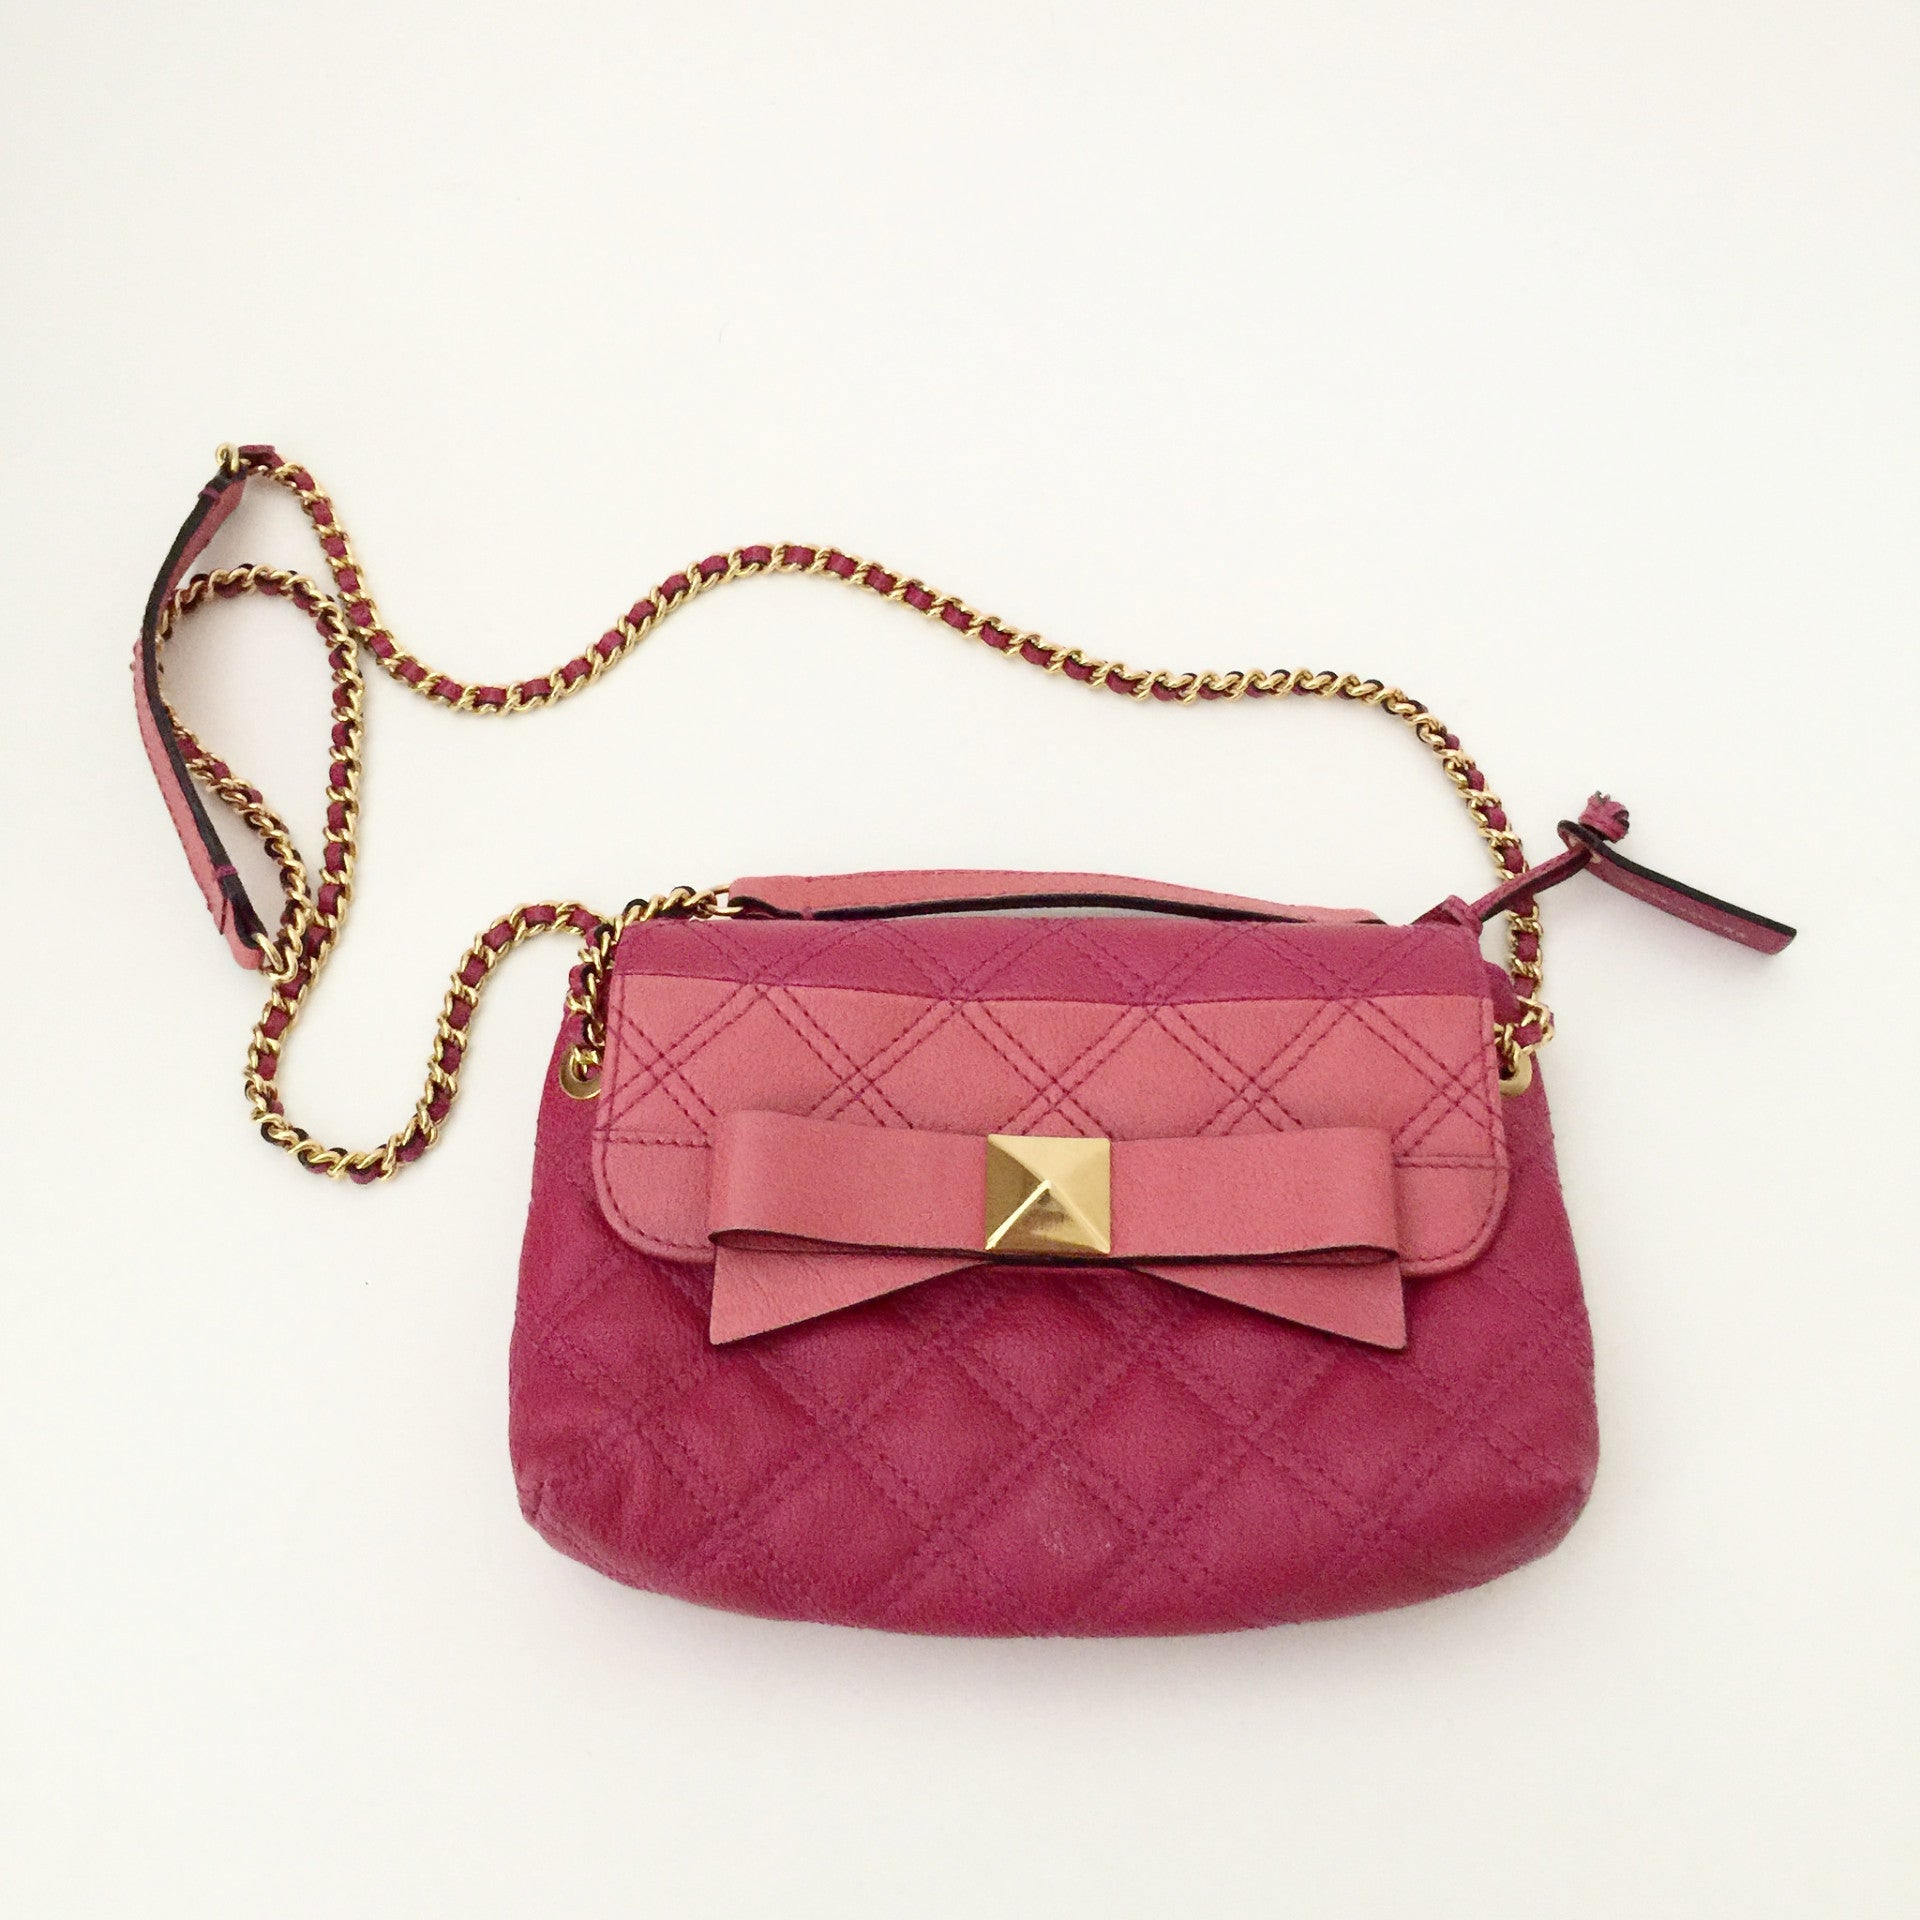 Authentic MARC JACOBS The Single Crossbody